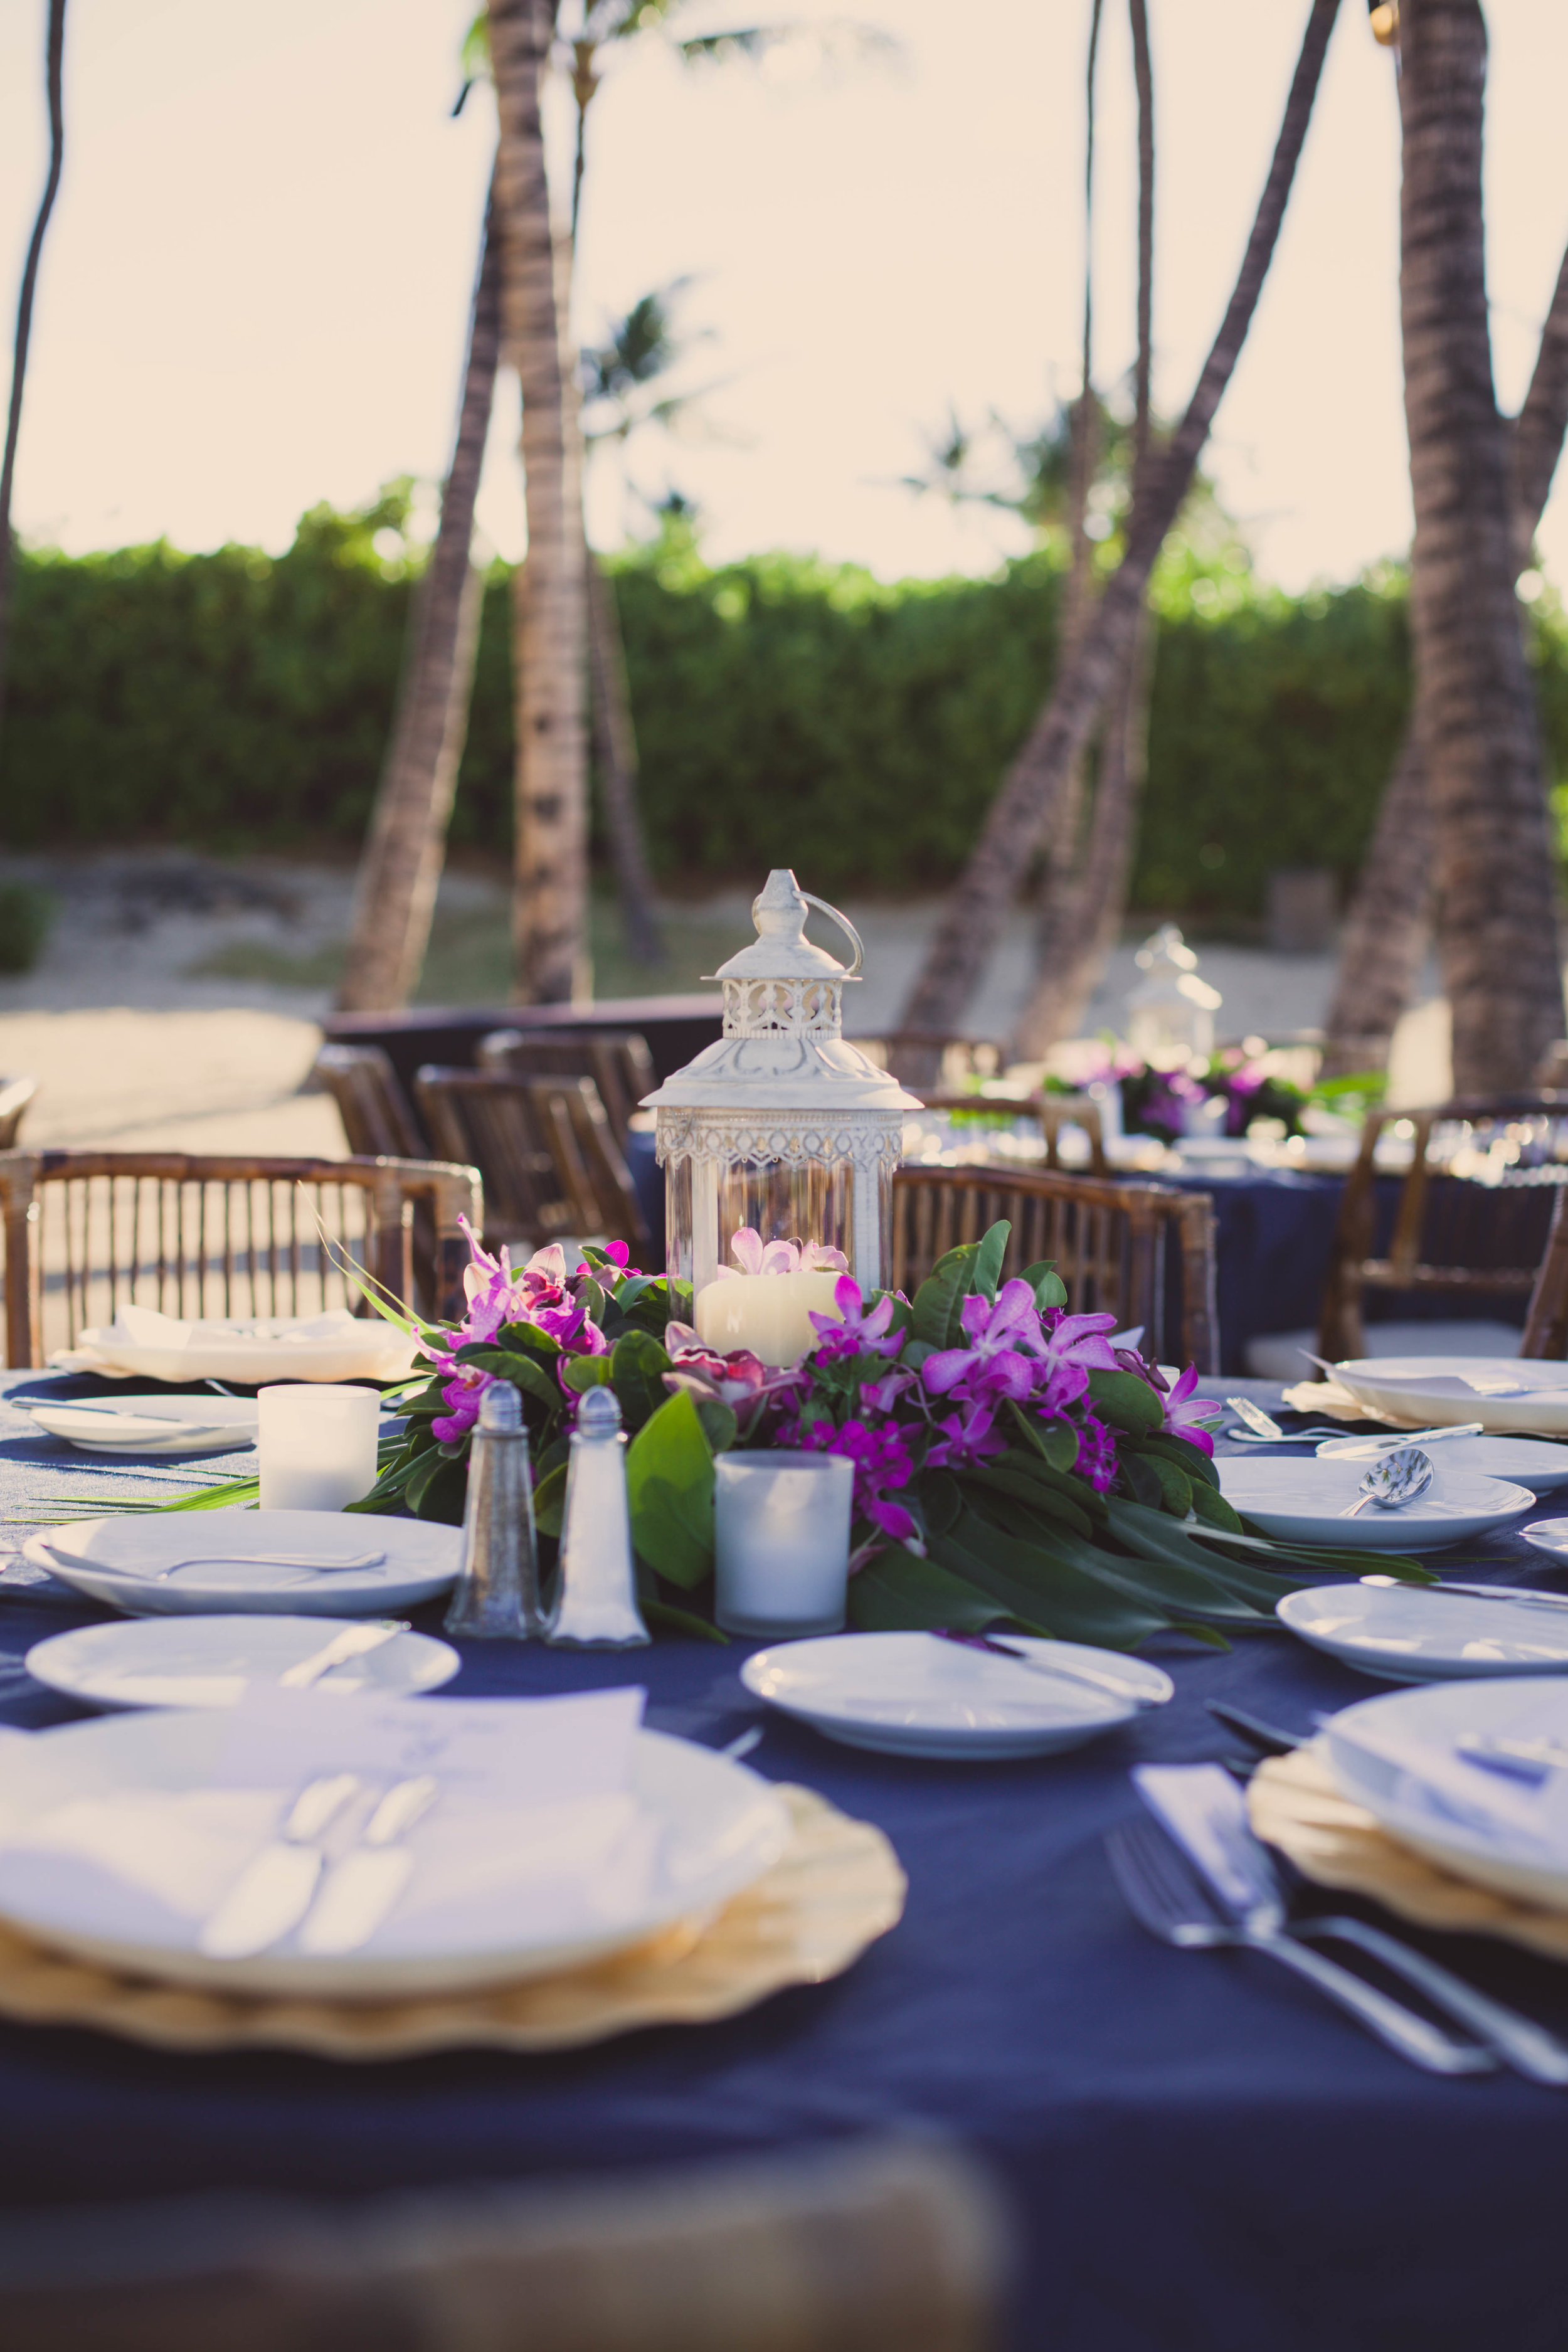 big island hawaii fairmont orchid beach wedding © kelilina photography 20170812172021-1.jpg